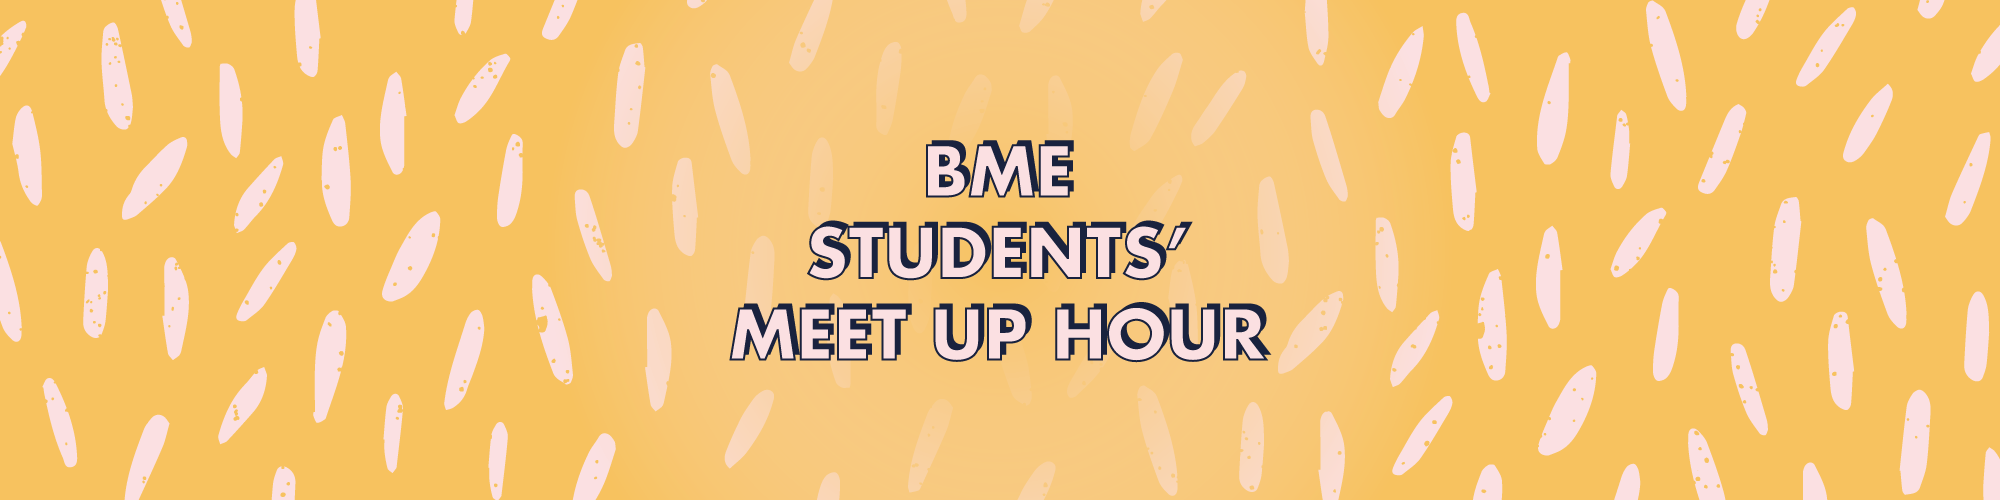 BME Students' Meet Up Hour